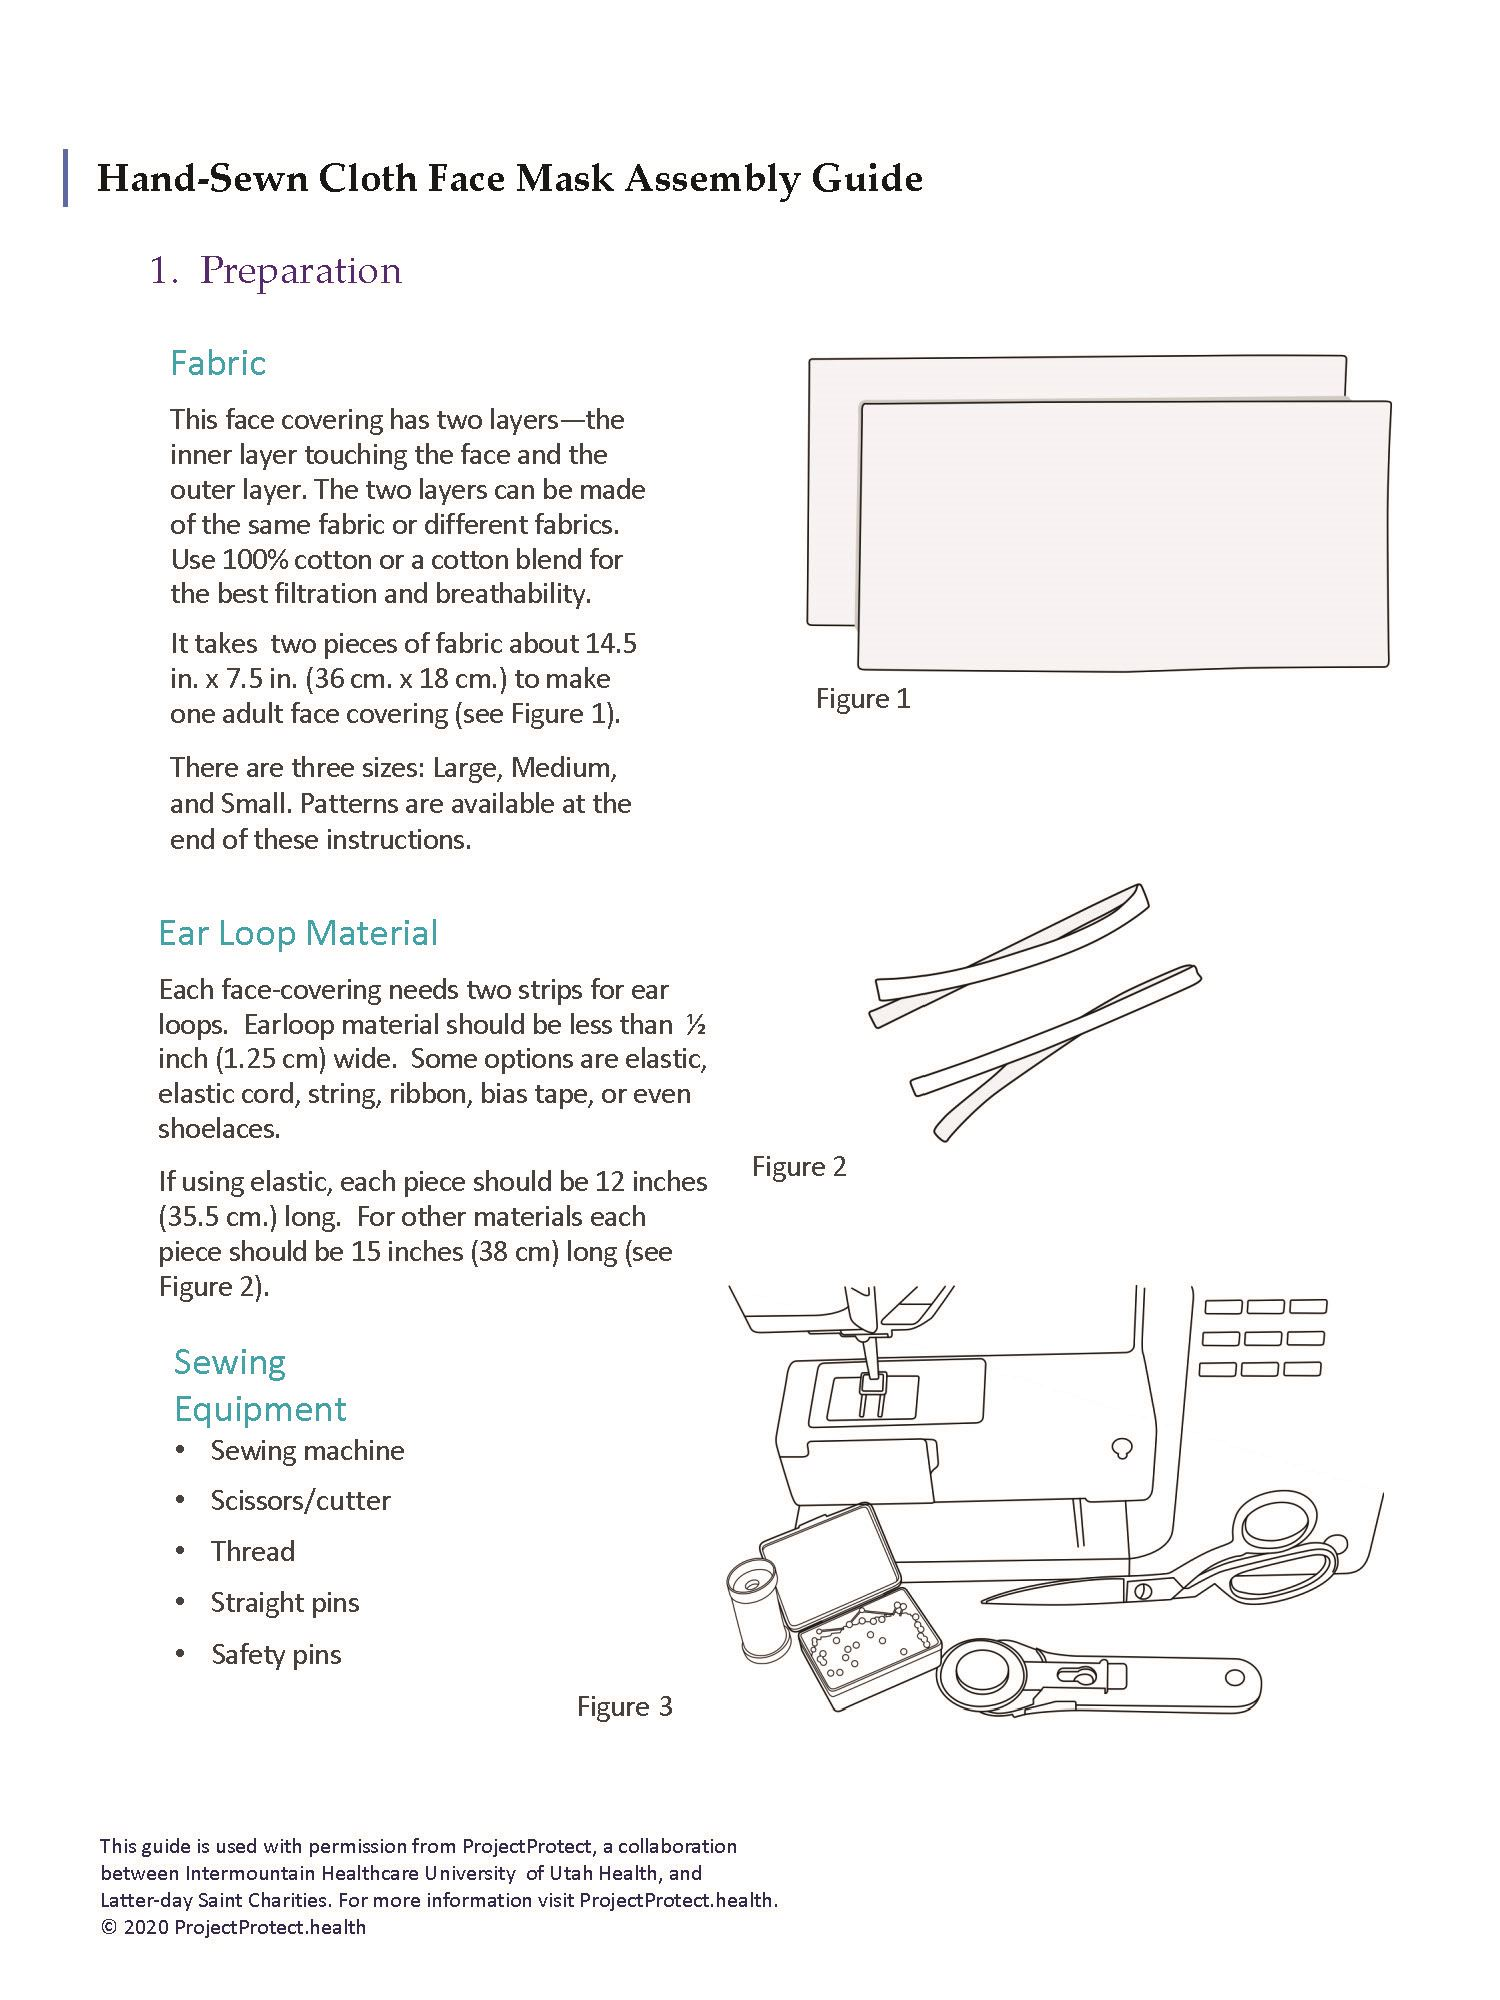 TakeCover homemade cloth face-covering assembly guide_Page_1